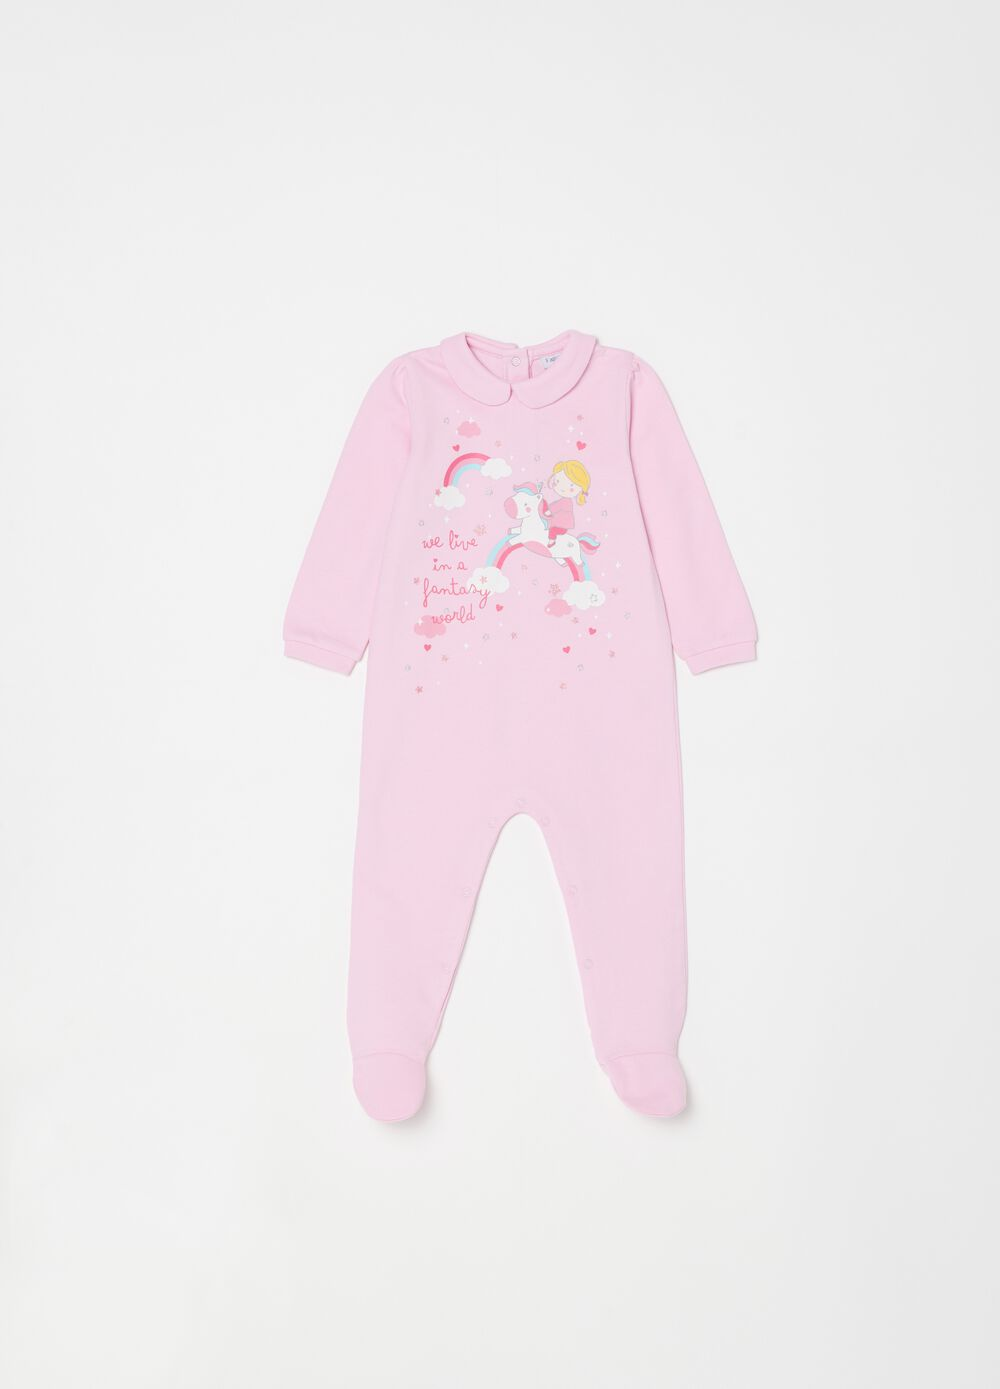 100% organic cotton onesie with feet and print